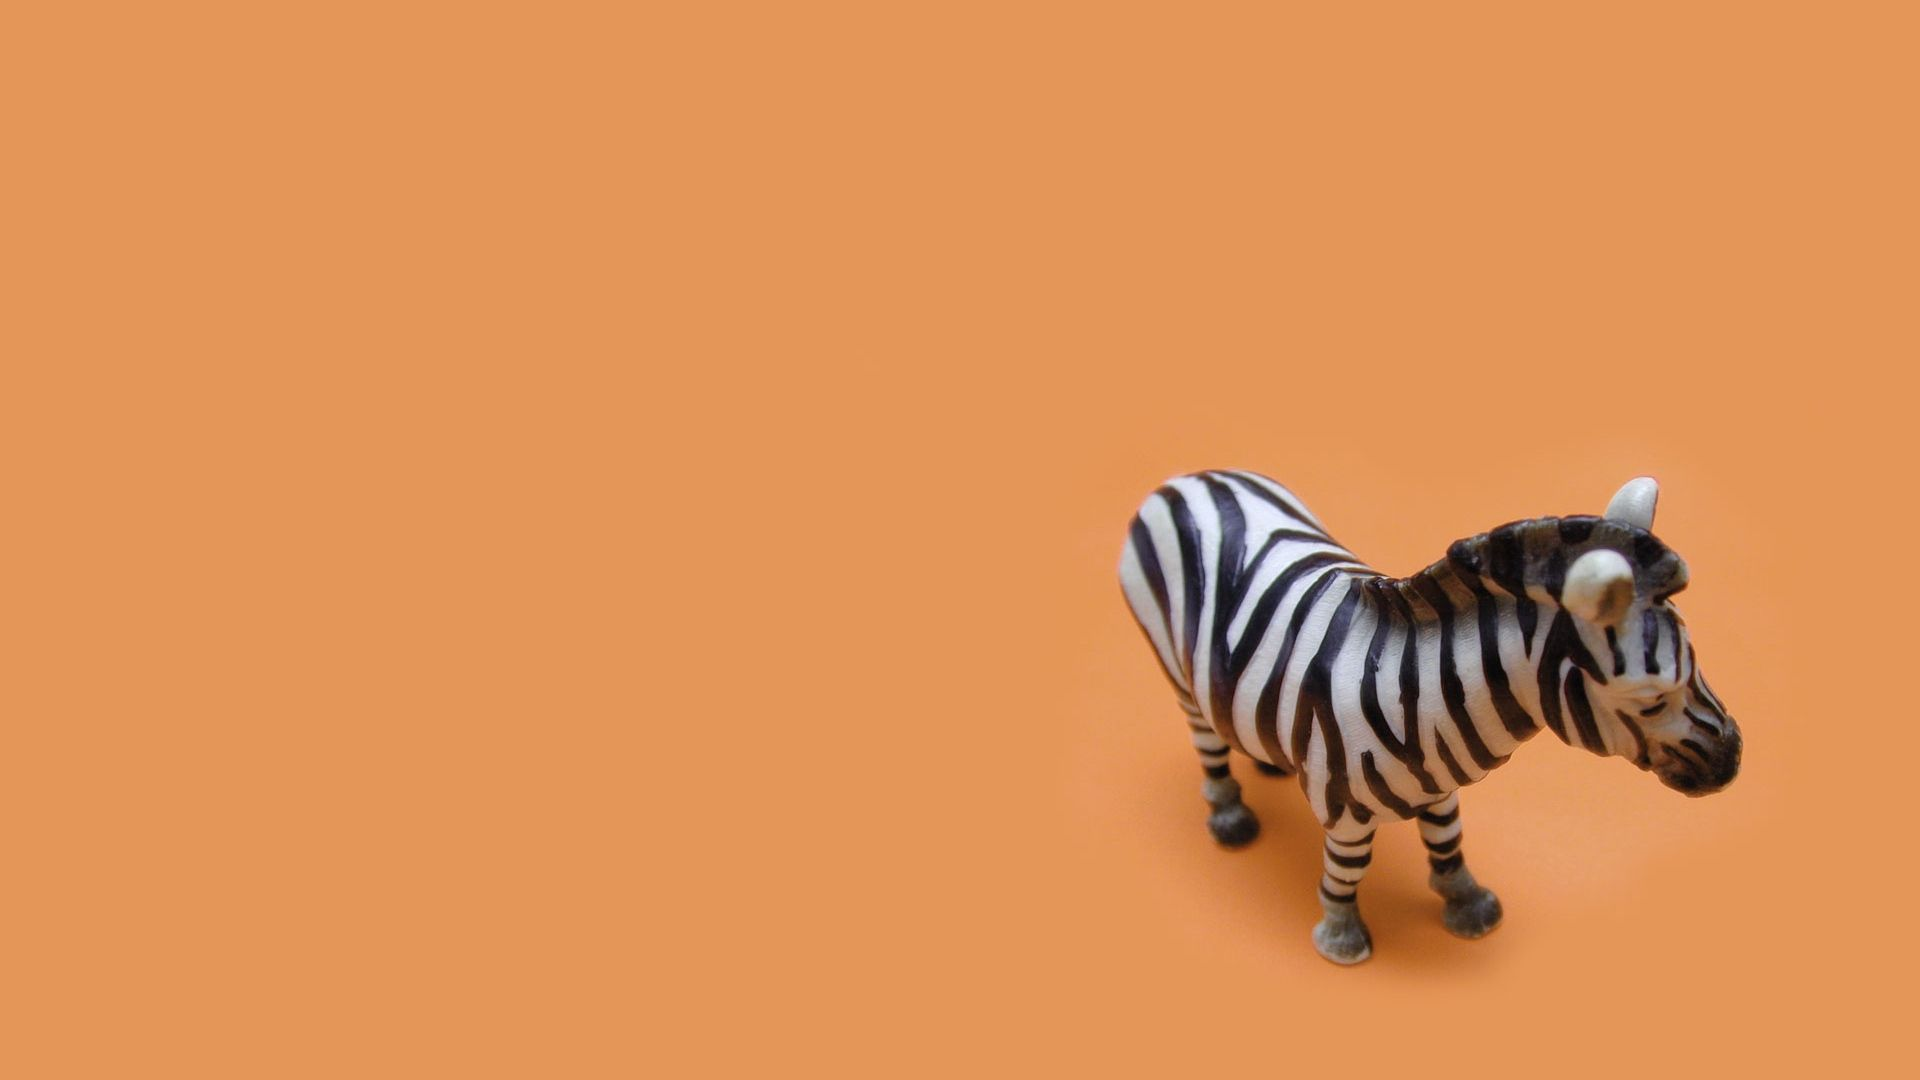 109362 download wallpaper Miscellanea, Miscellaneous, Zebra, Toy, Background, Striped screensavers and pictures for free